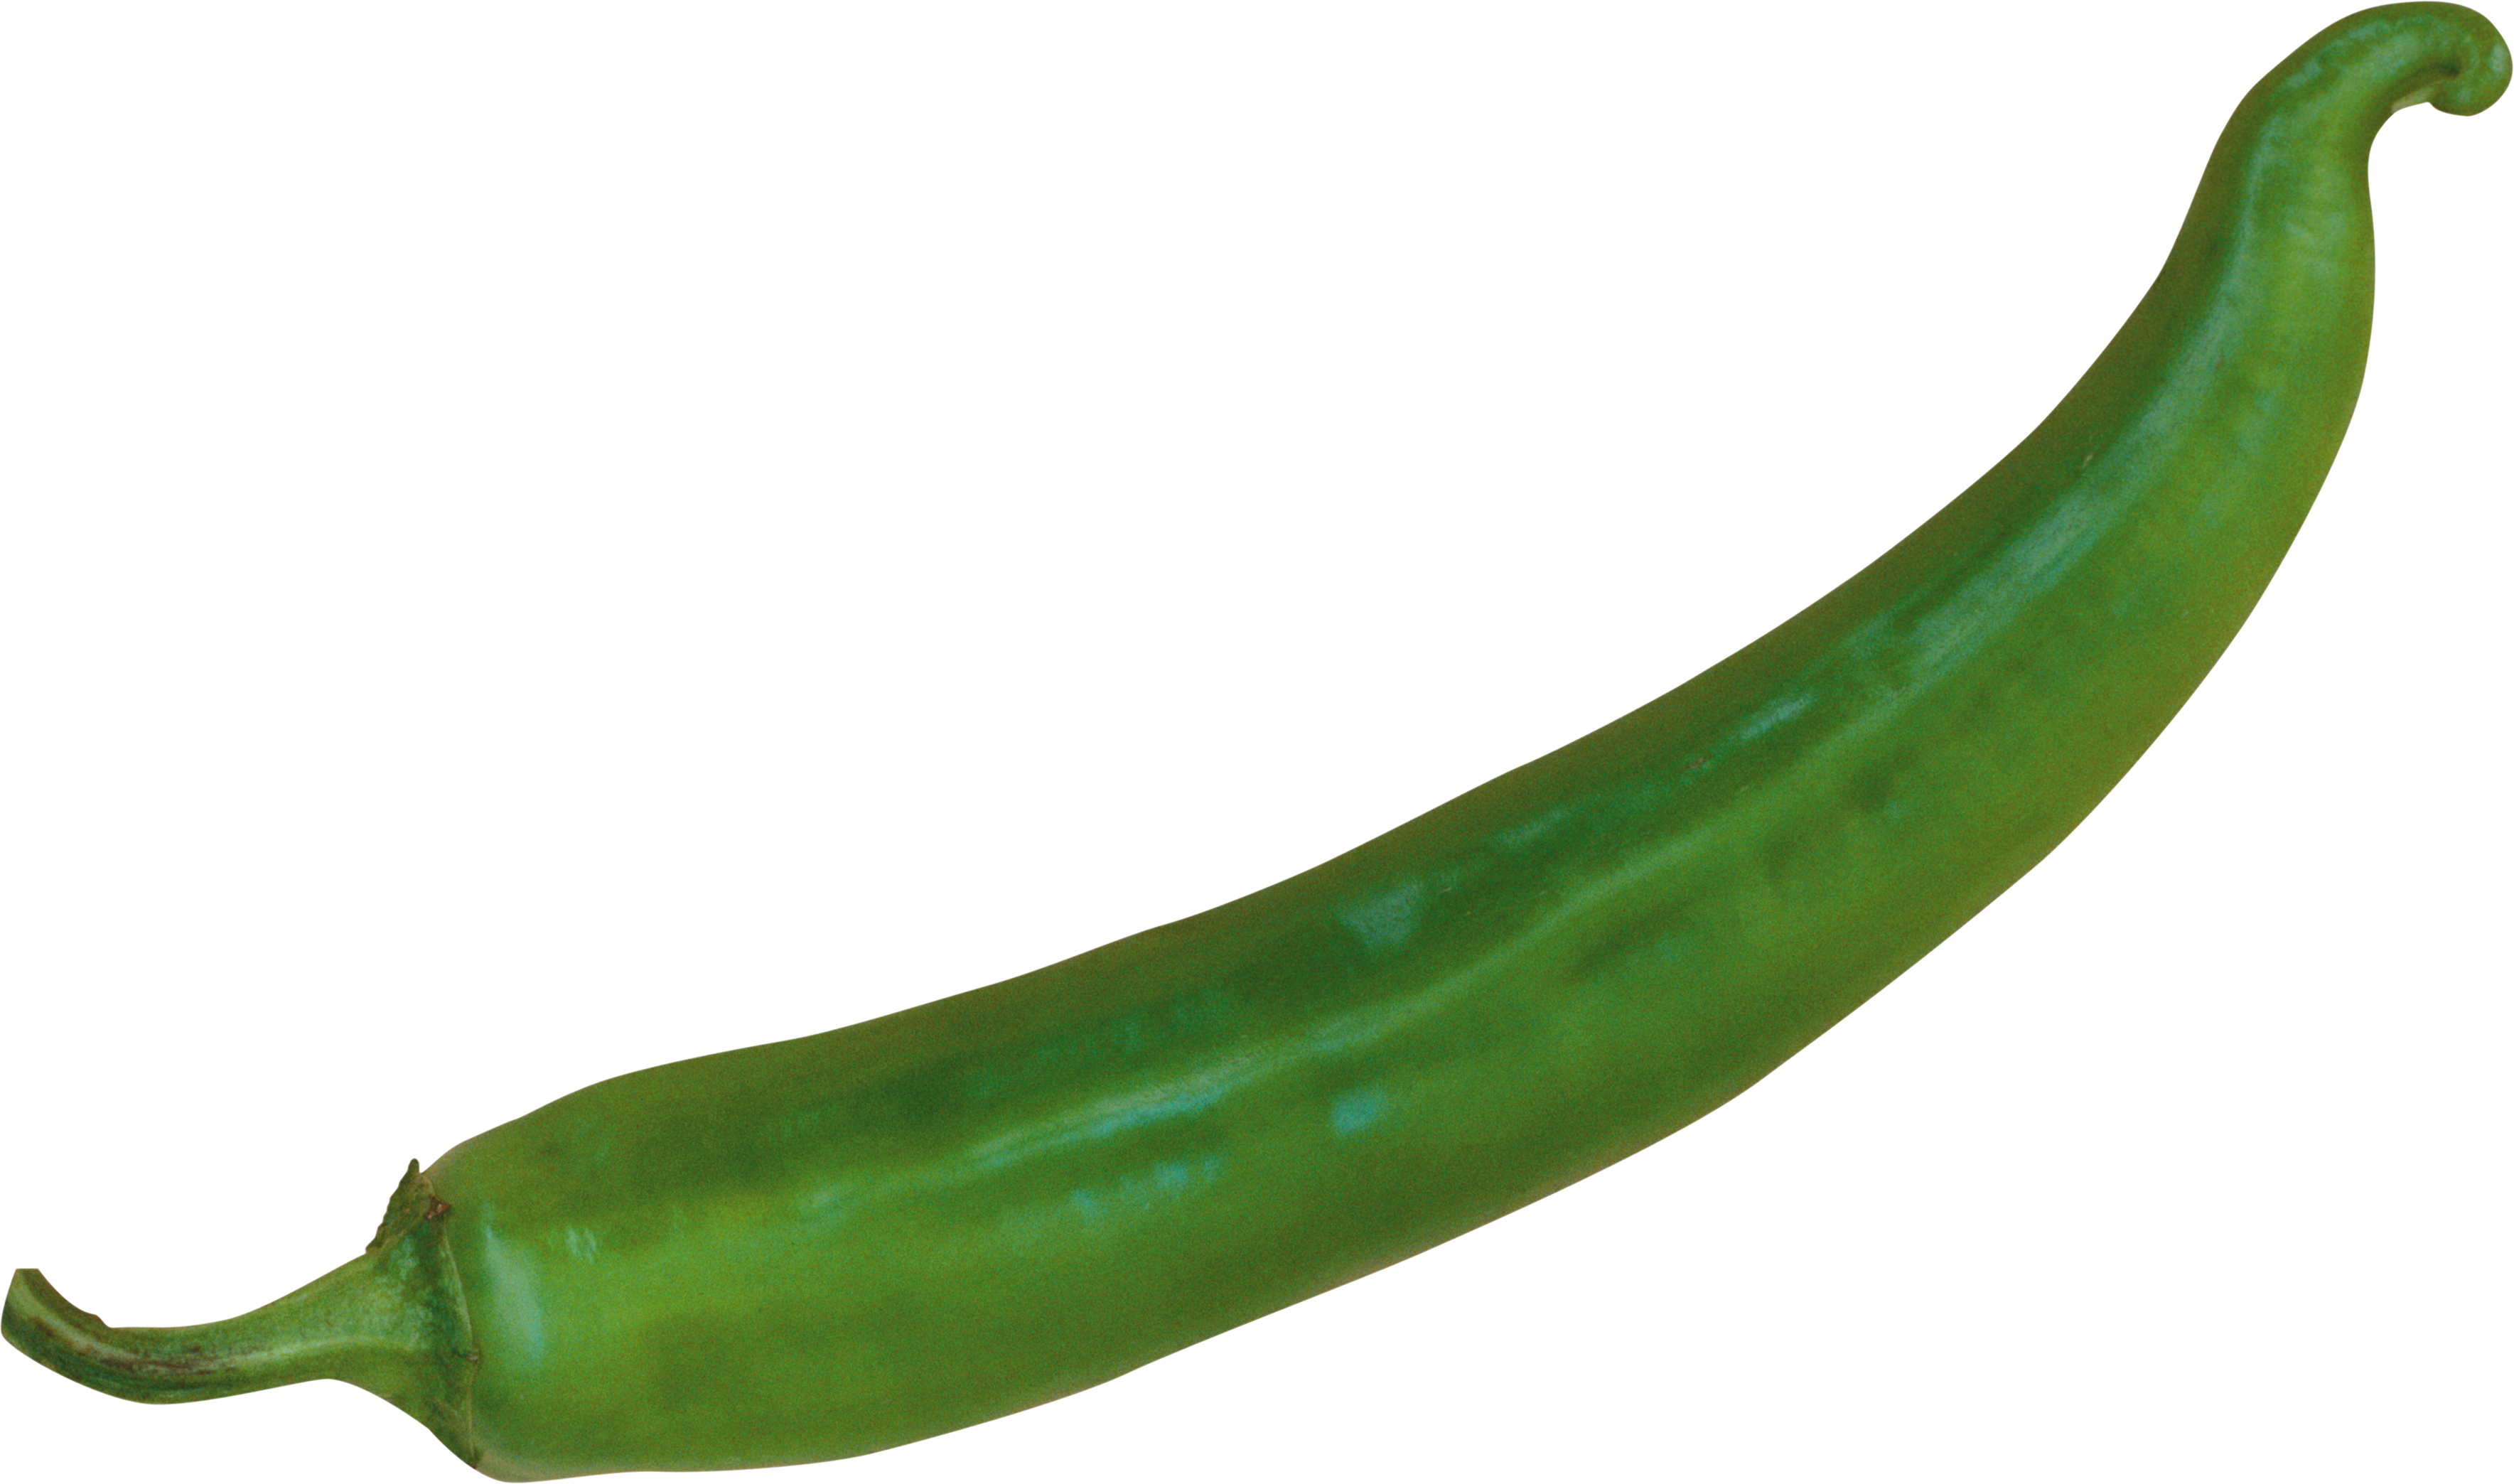 Green chilli png. Pepper image free download